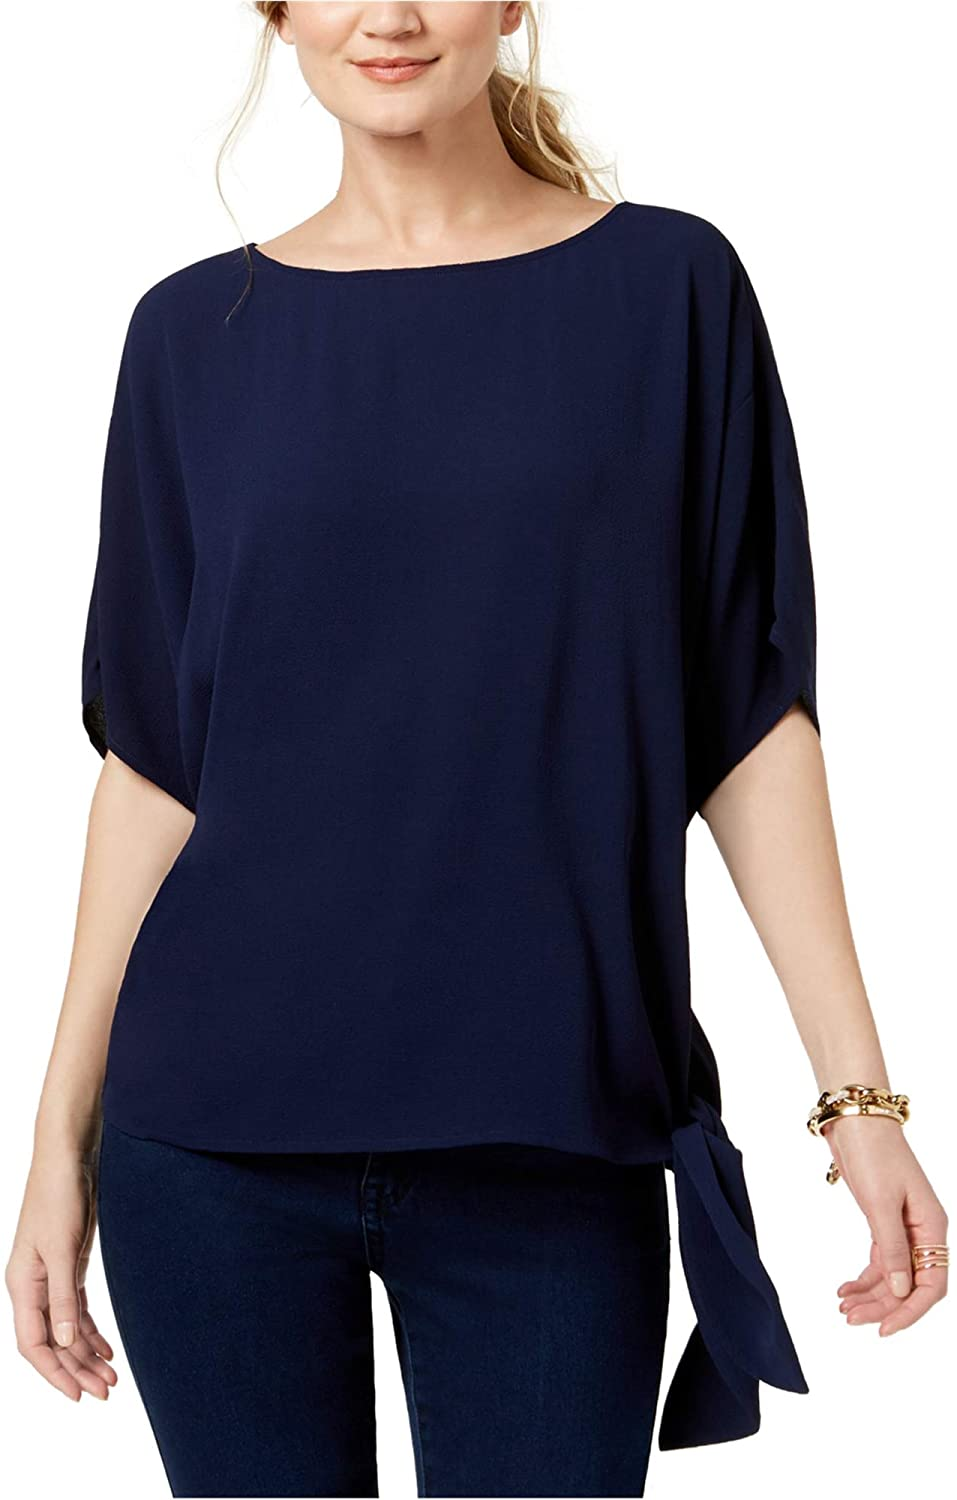 Michael Kors Womens Side-Tie Pullover Blouse